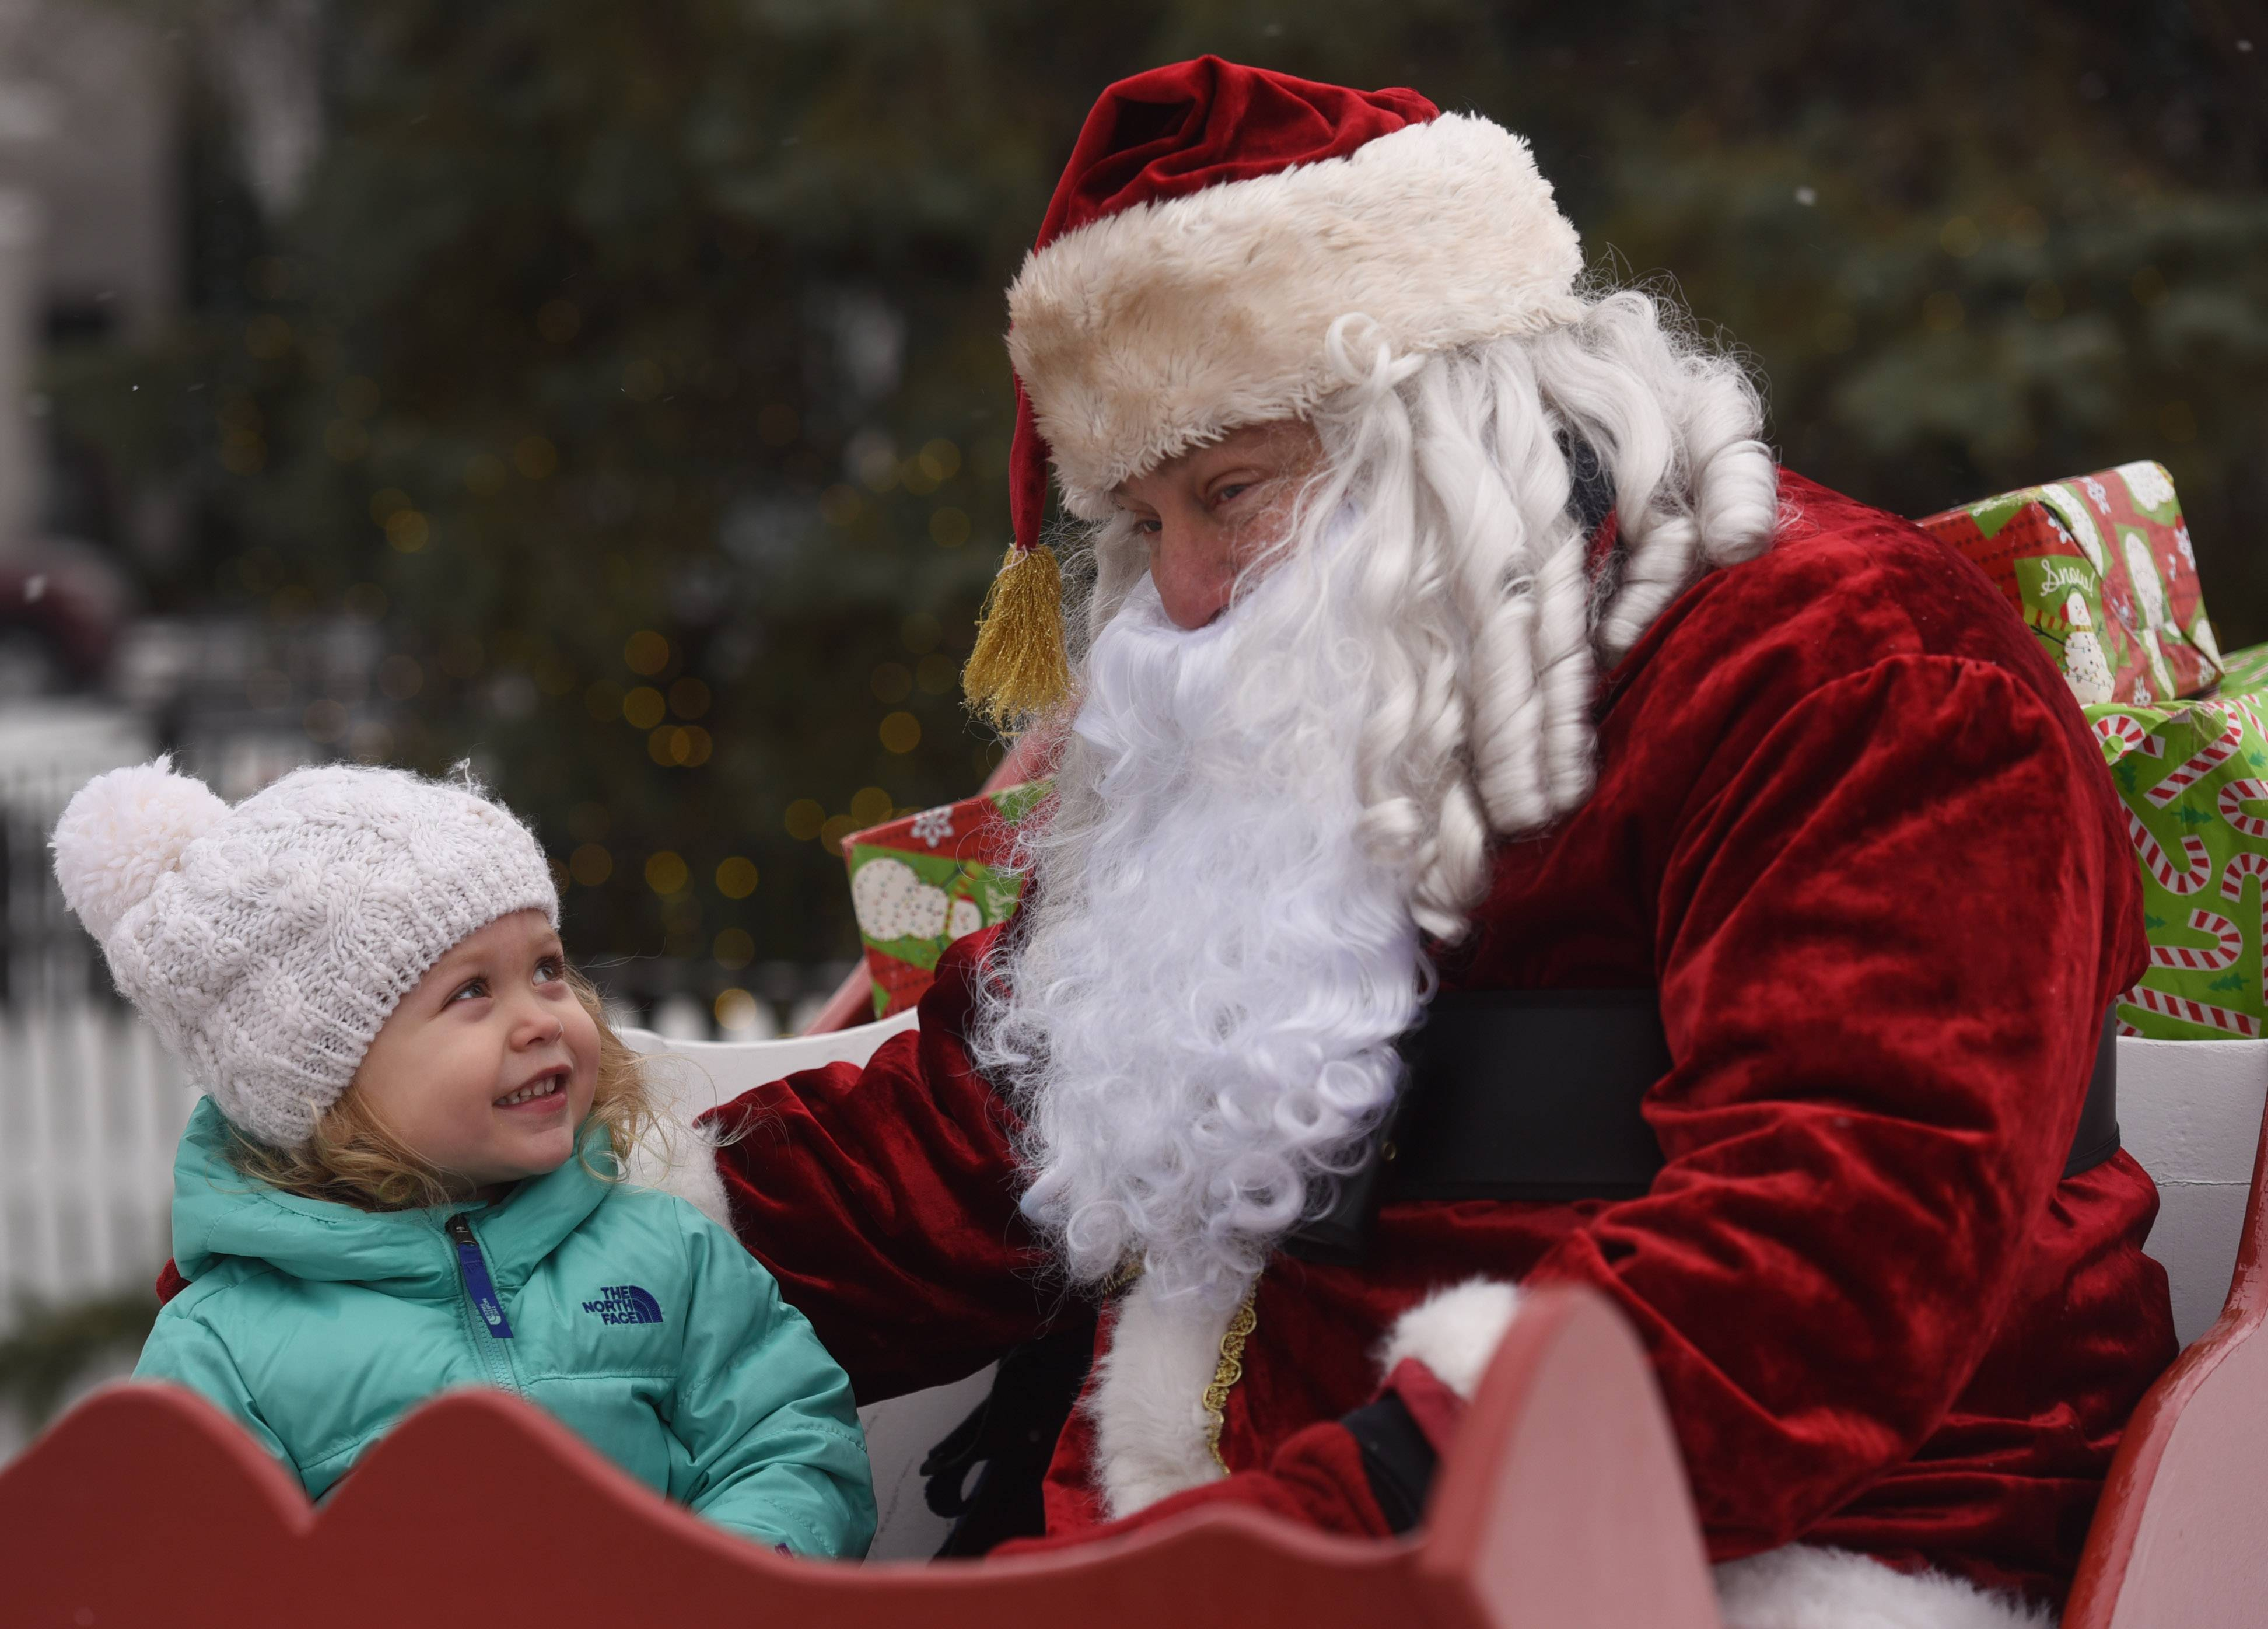 Katherine Yarbrough, 2-1/2, of Libertyville visits with Santa during the Dickens of a Holiday event in downtown Libertyville Saturday.